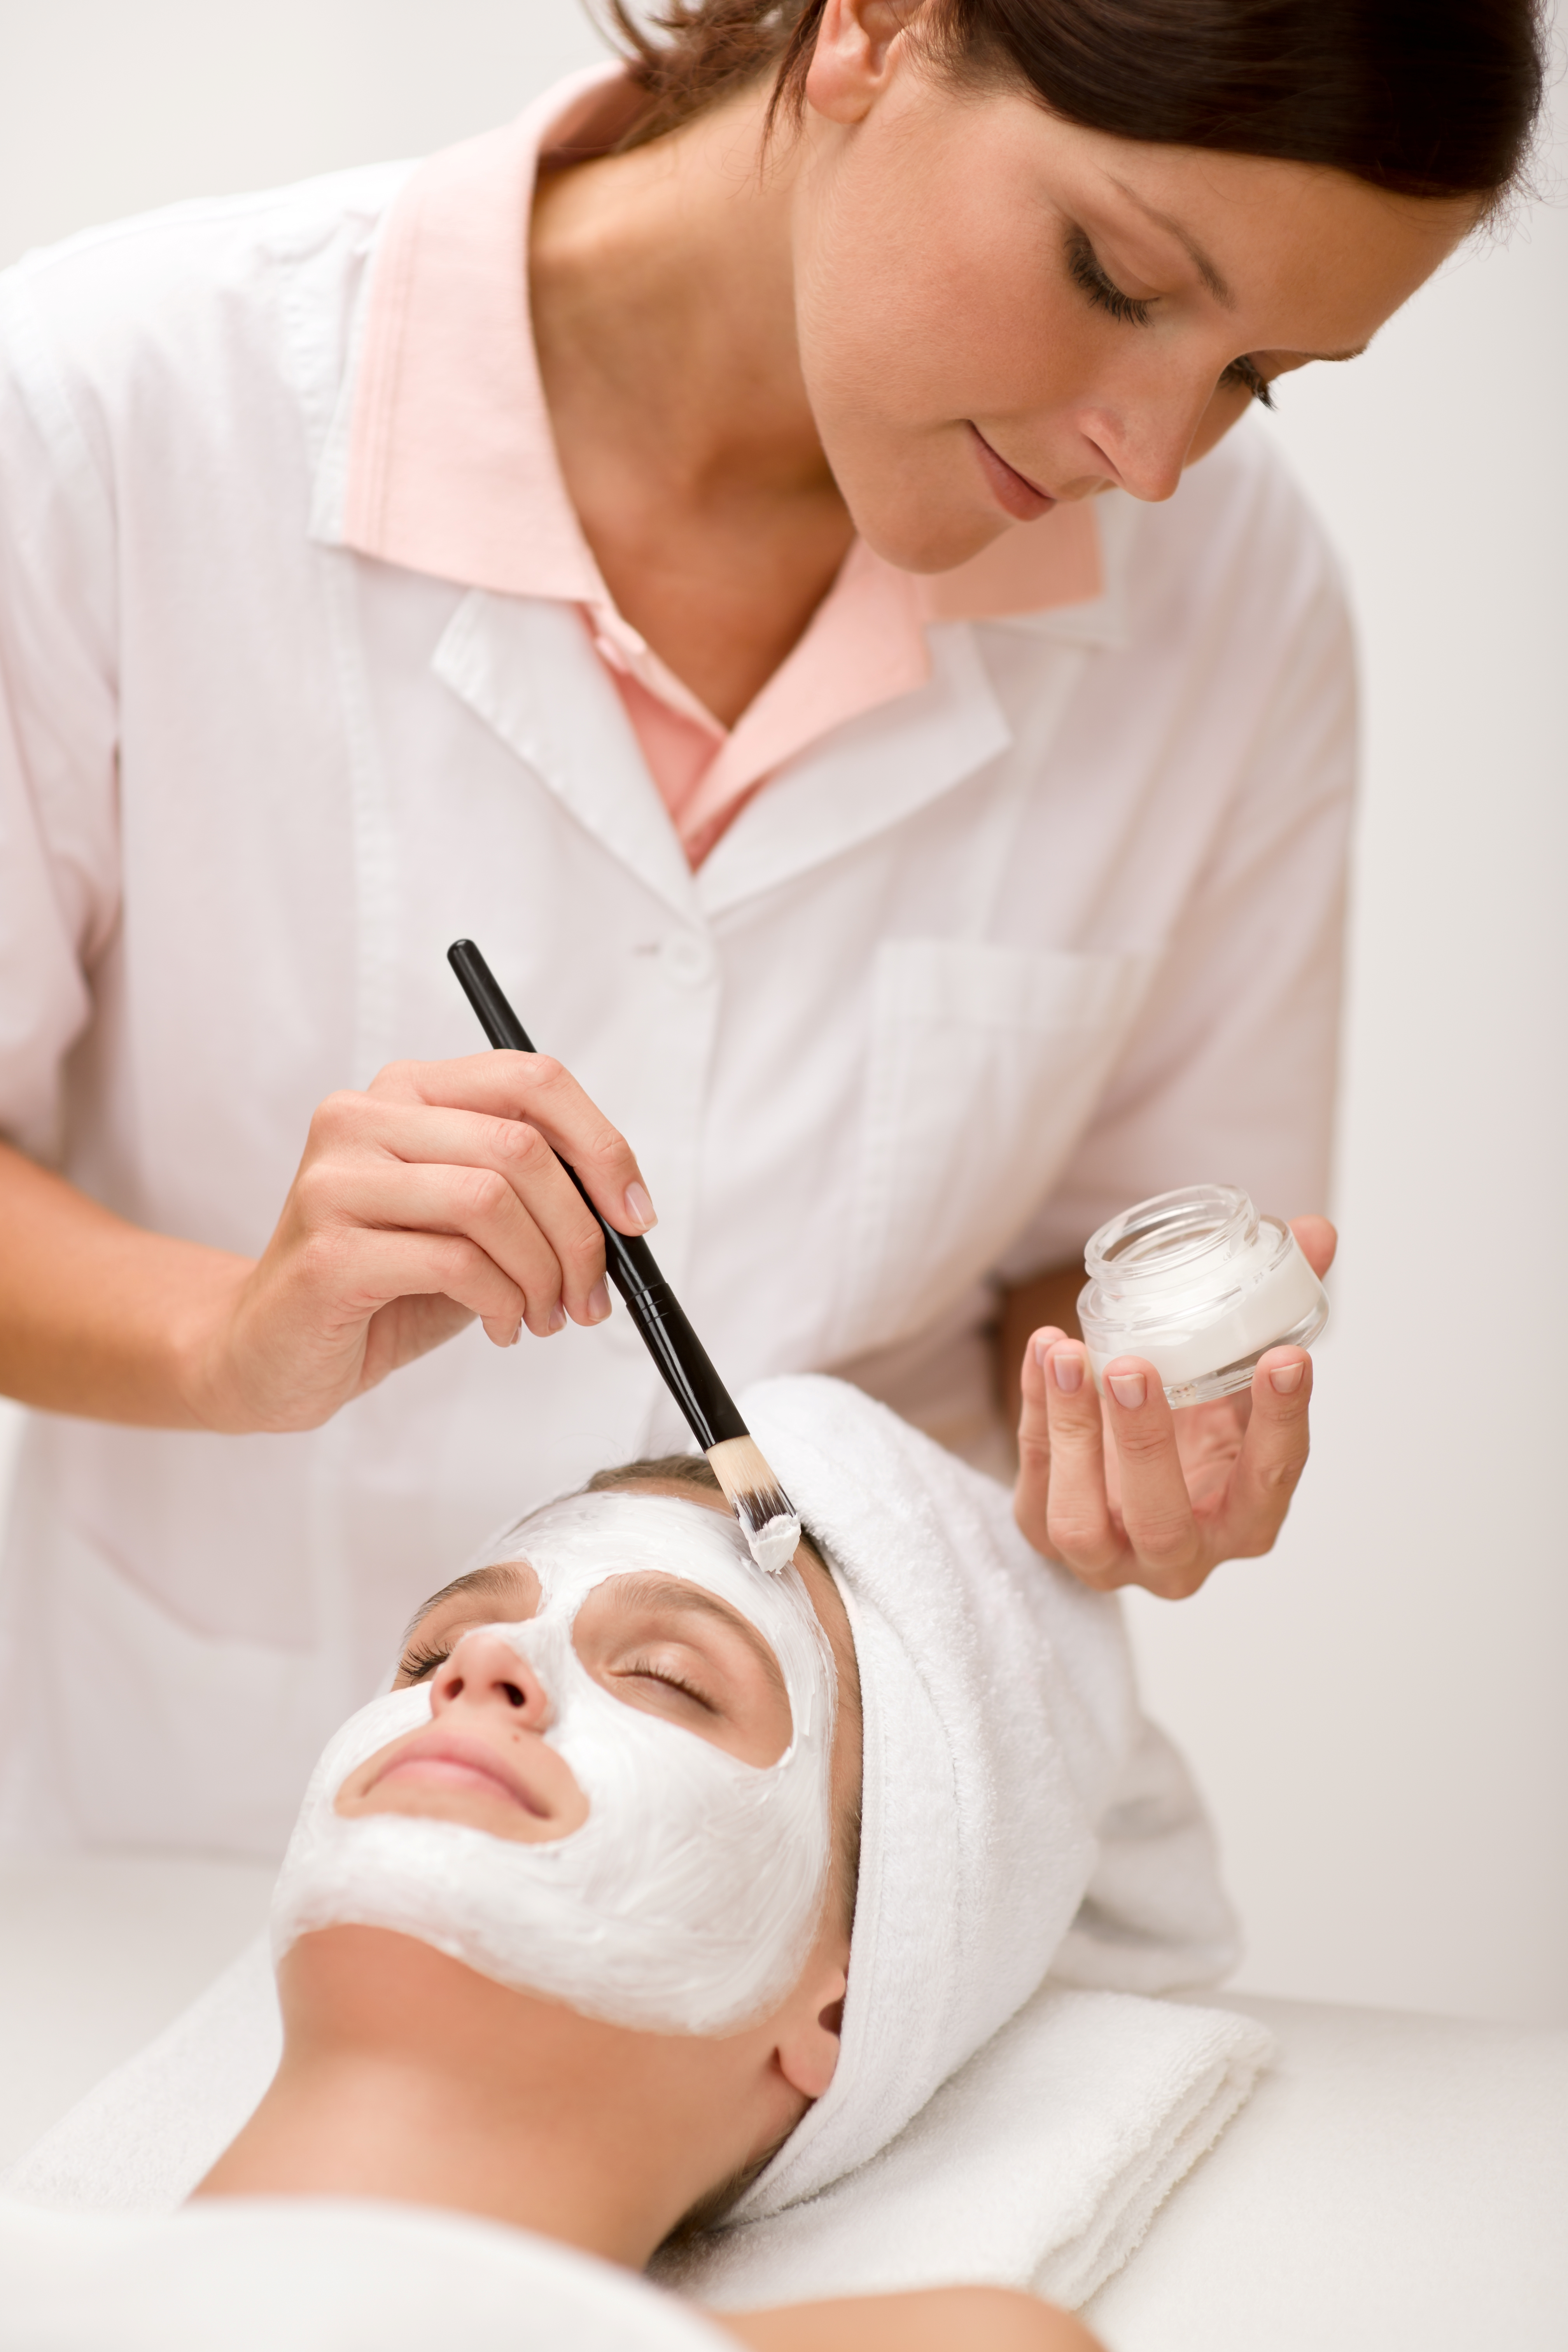 How do I prepare for my first visit to my Charlotte dermatologist?